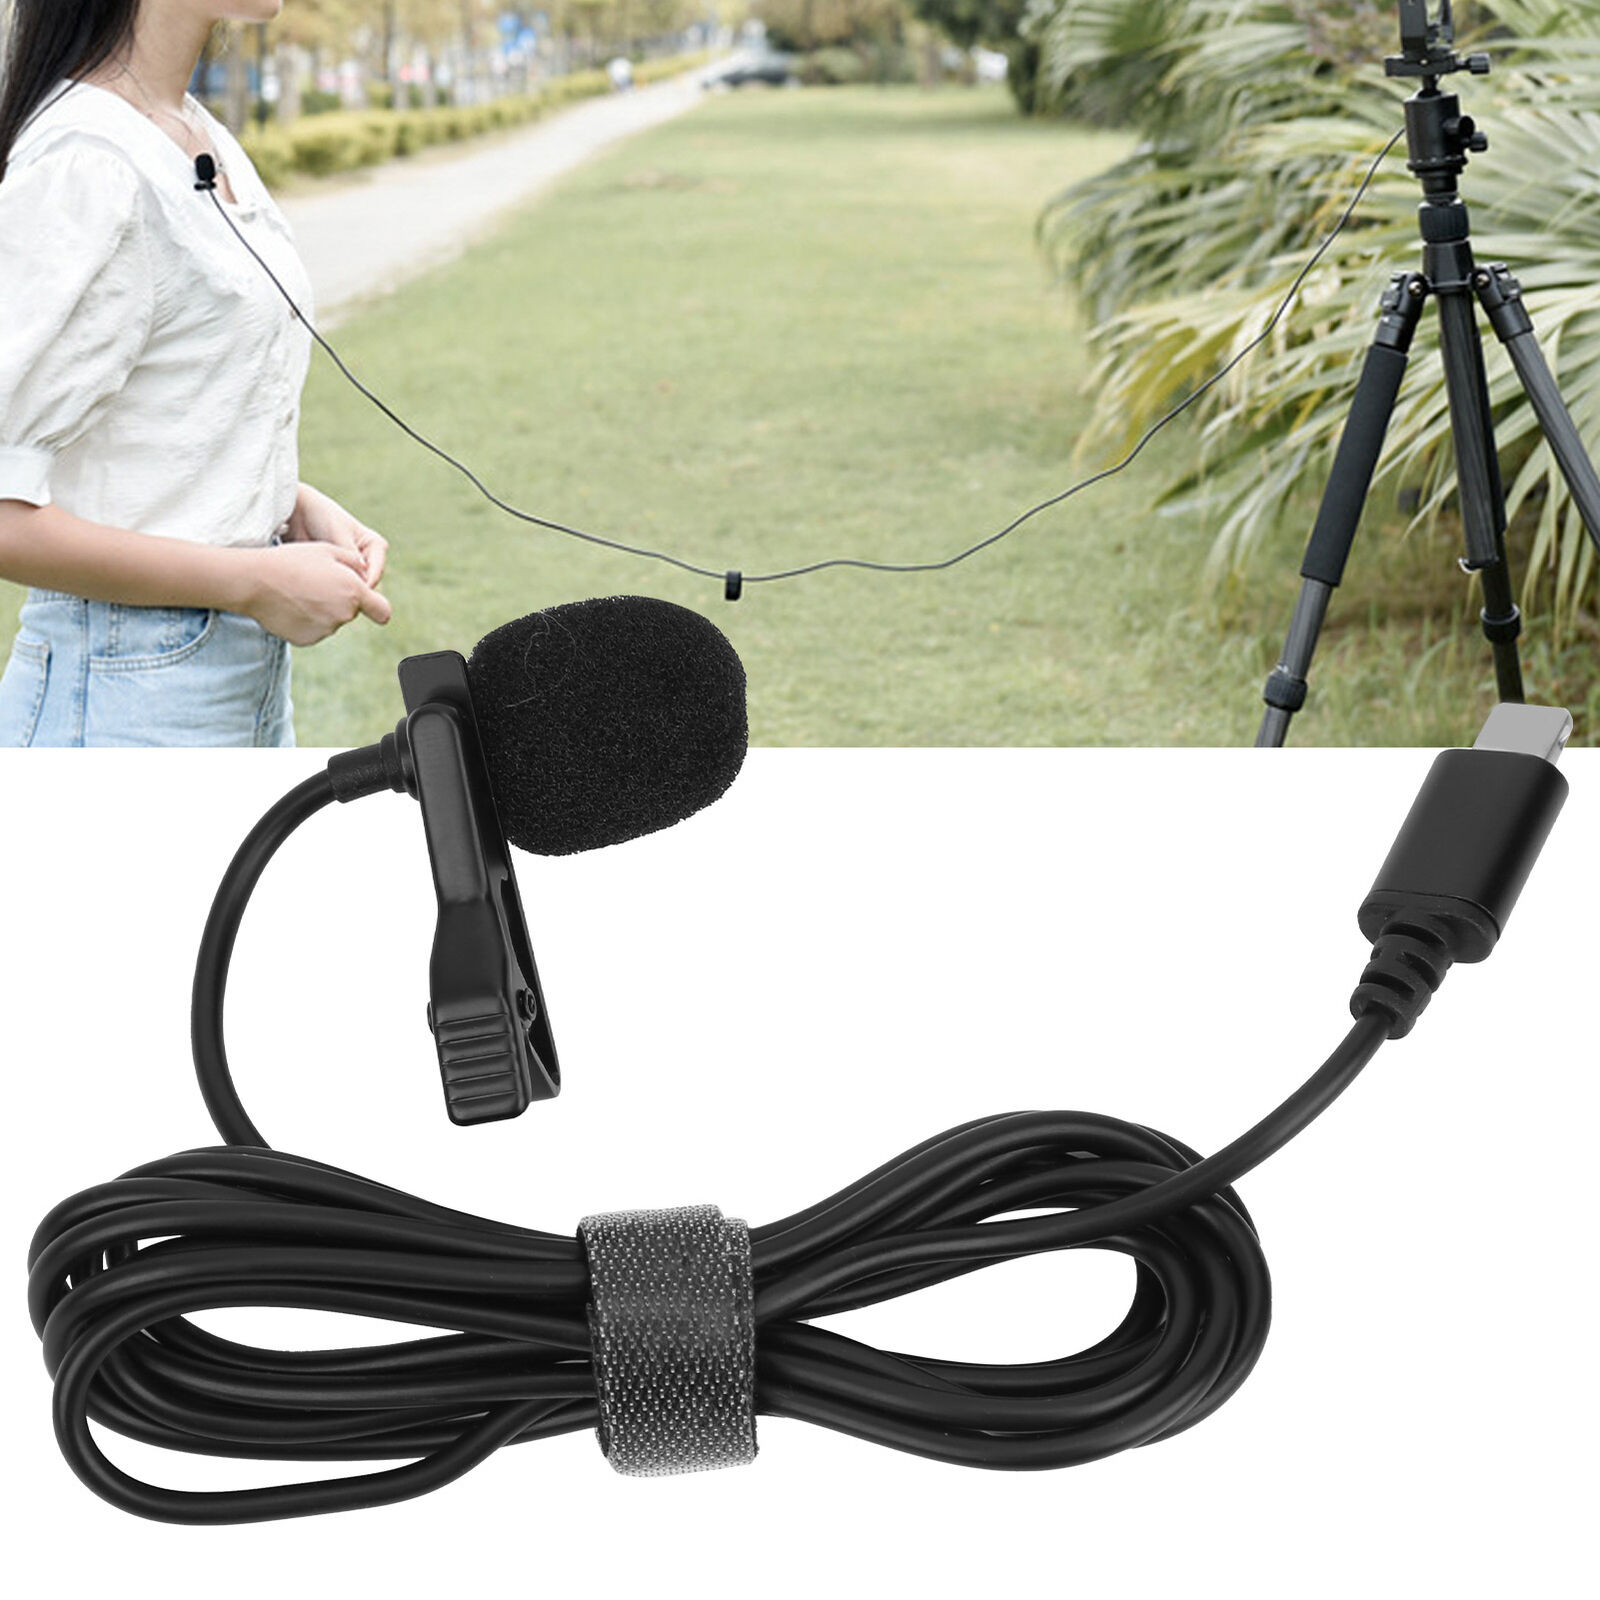 Lavalier Microphone Mic Mobile Phone Live Interview Recording for IOS Connector